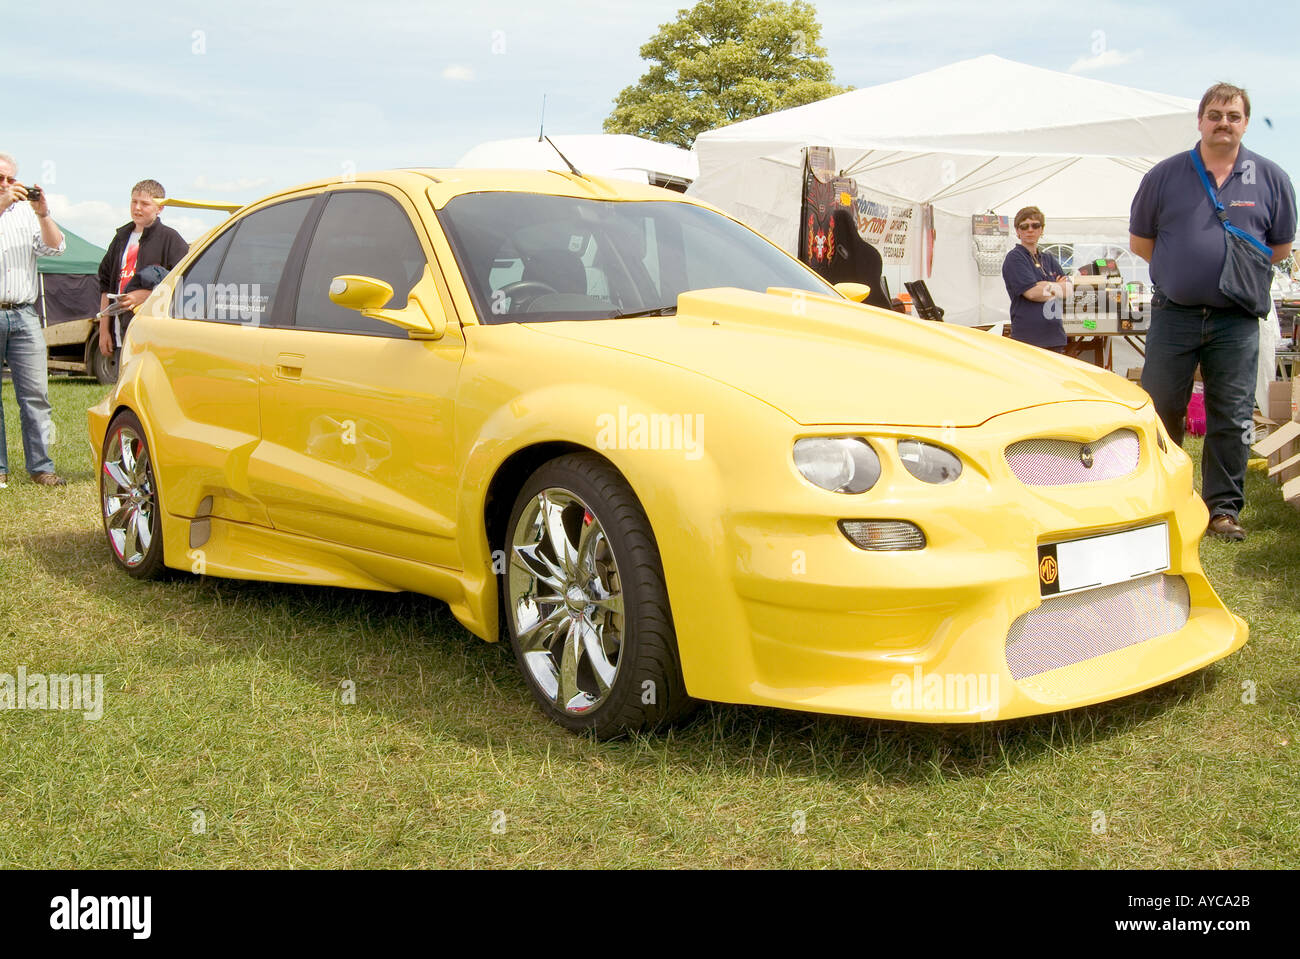 Boy Racer Rover 200 Car Fitted With Body Kit Styling Max Power Boy